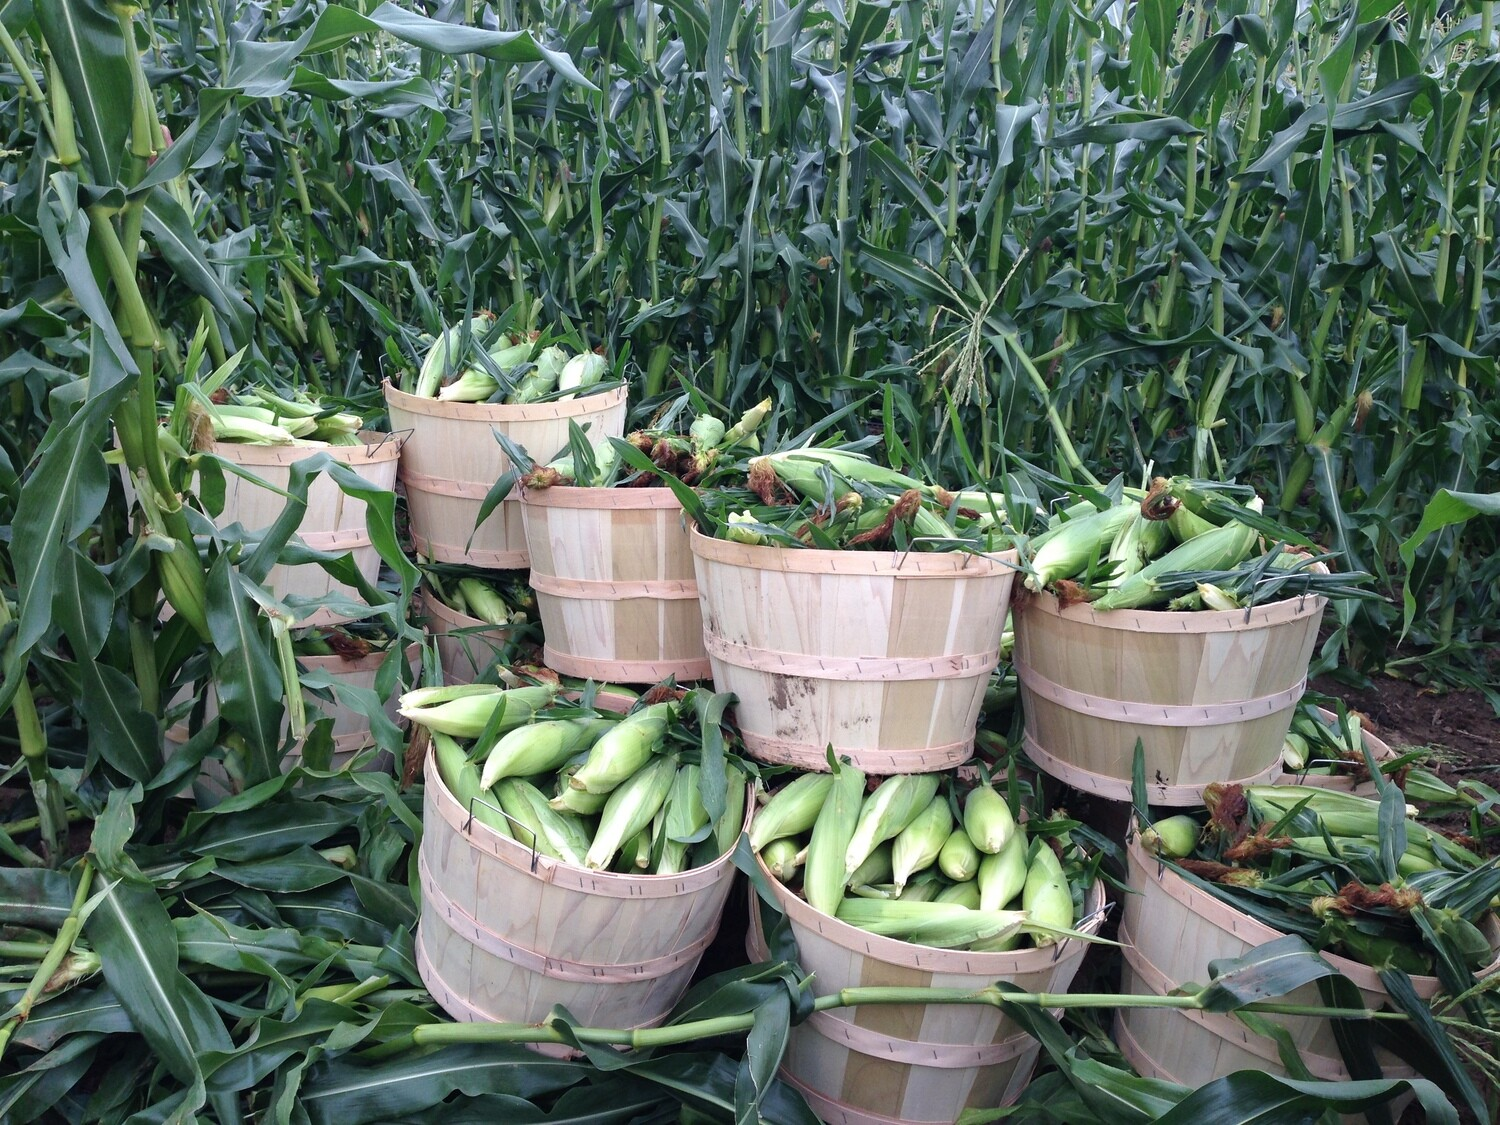 OUR FARM GROWN NON-GMO SWEET CORN - SPECIAL 7 ears for the price of 6